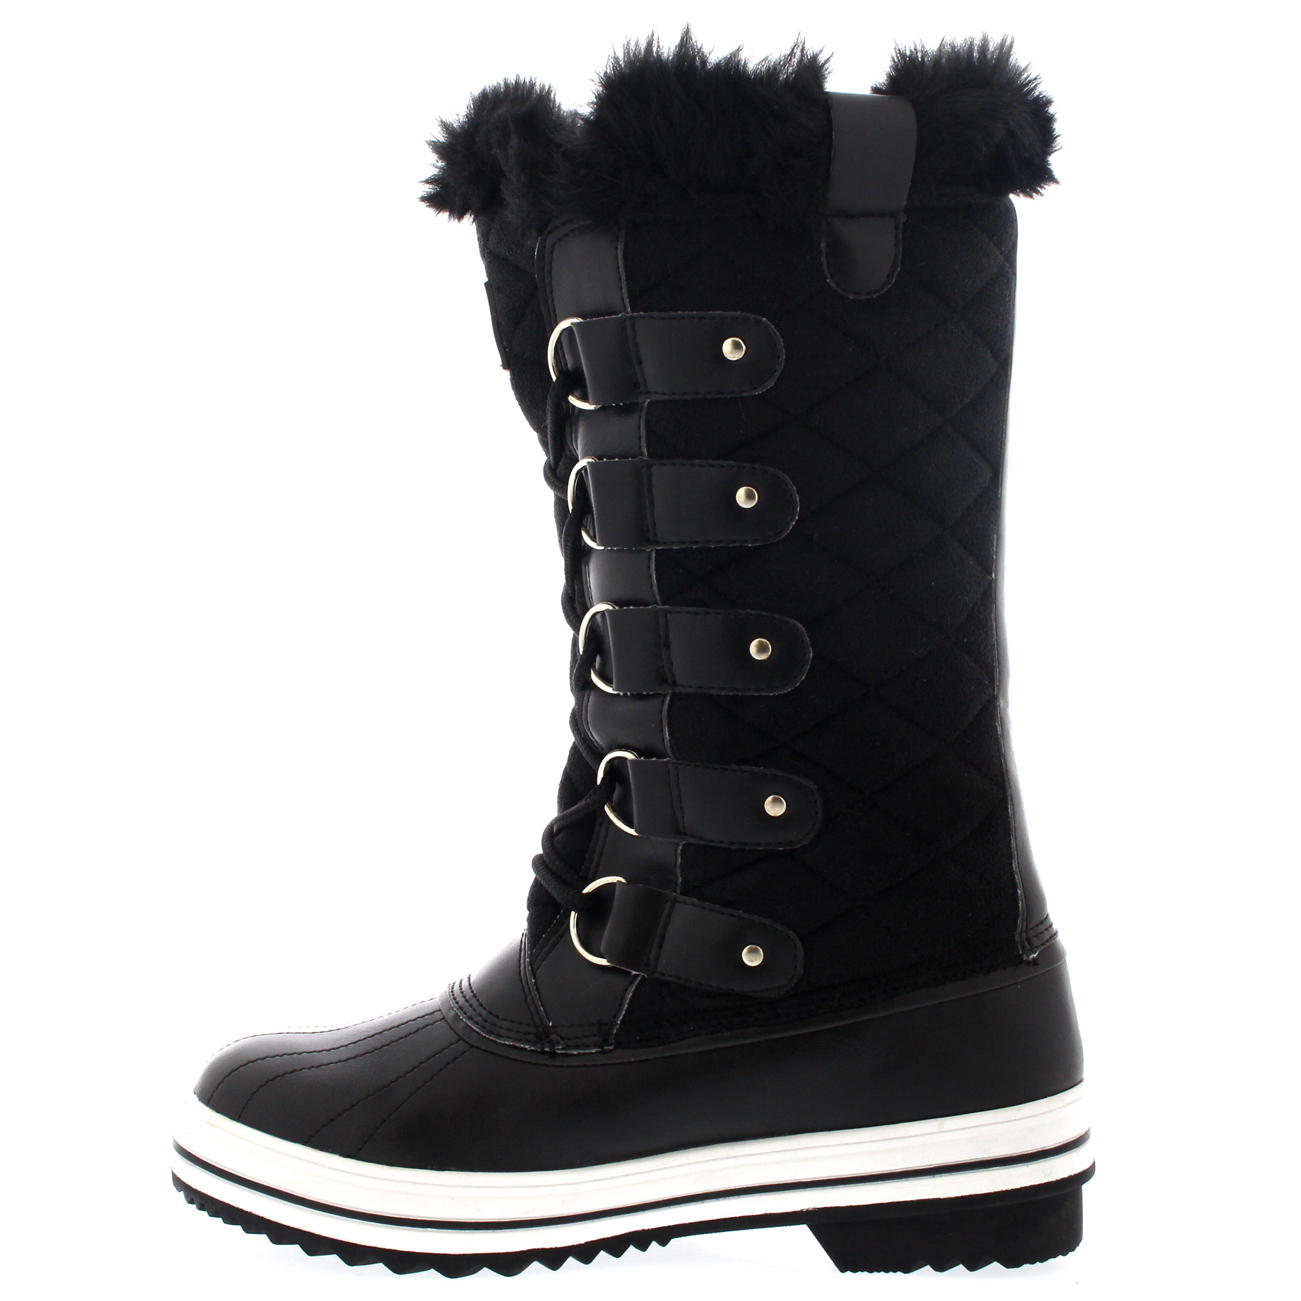 Shop for SOREL women's winter and waterproof boots online. SOREL boots come in bold, flattering, rugged, and stylish looks. The right boots in any setting.